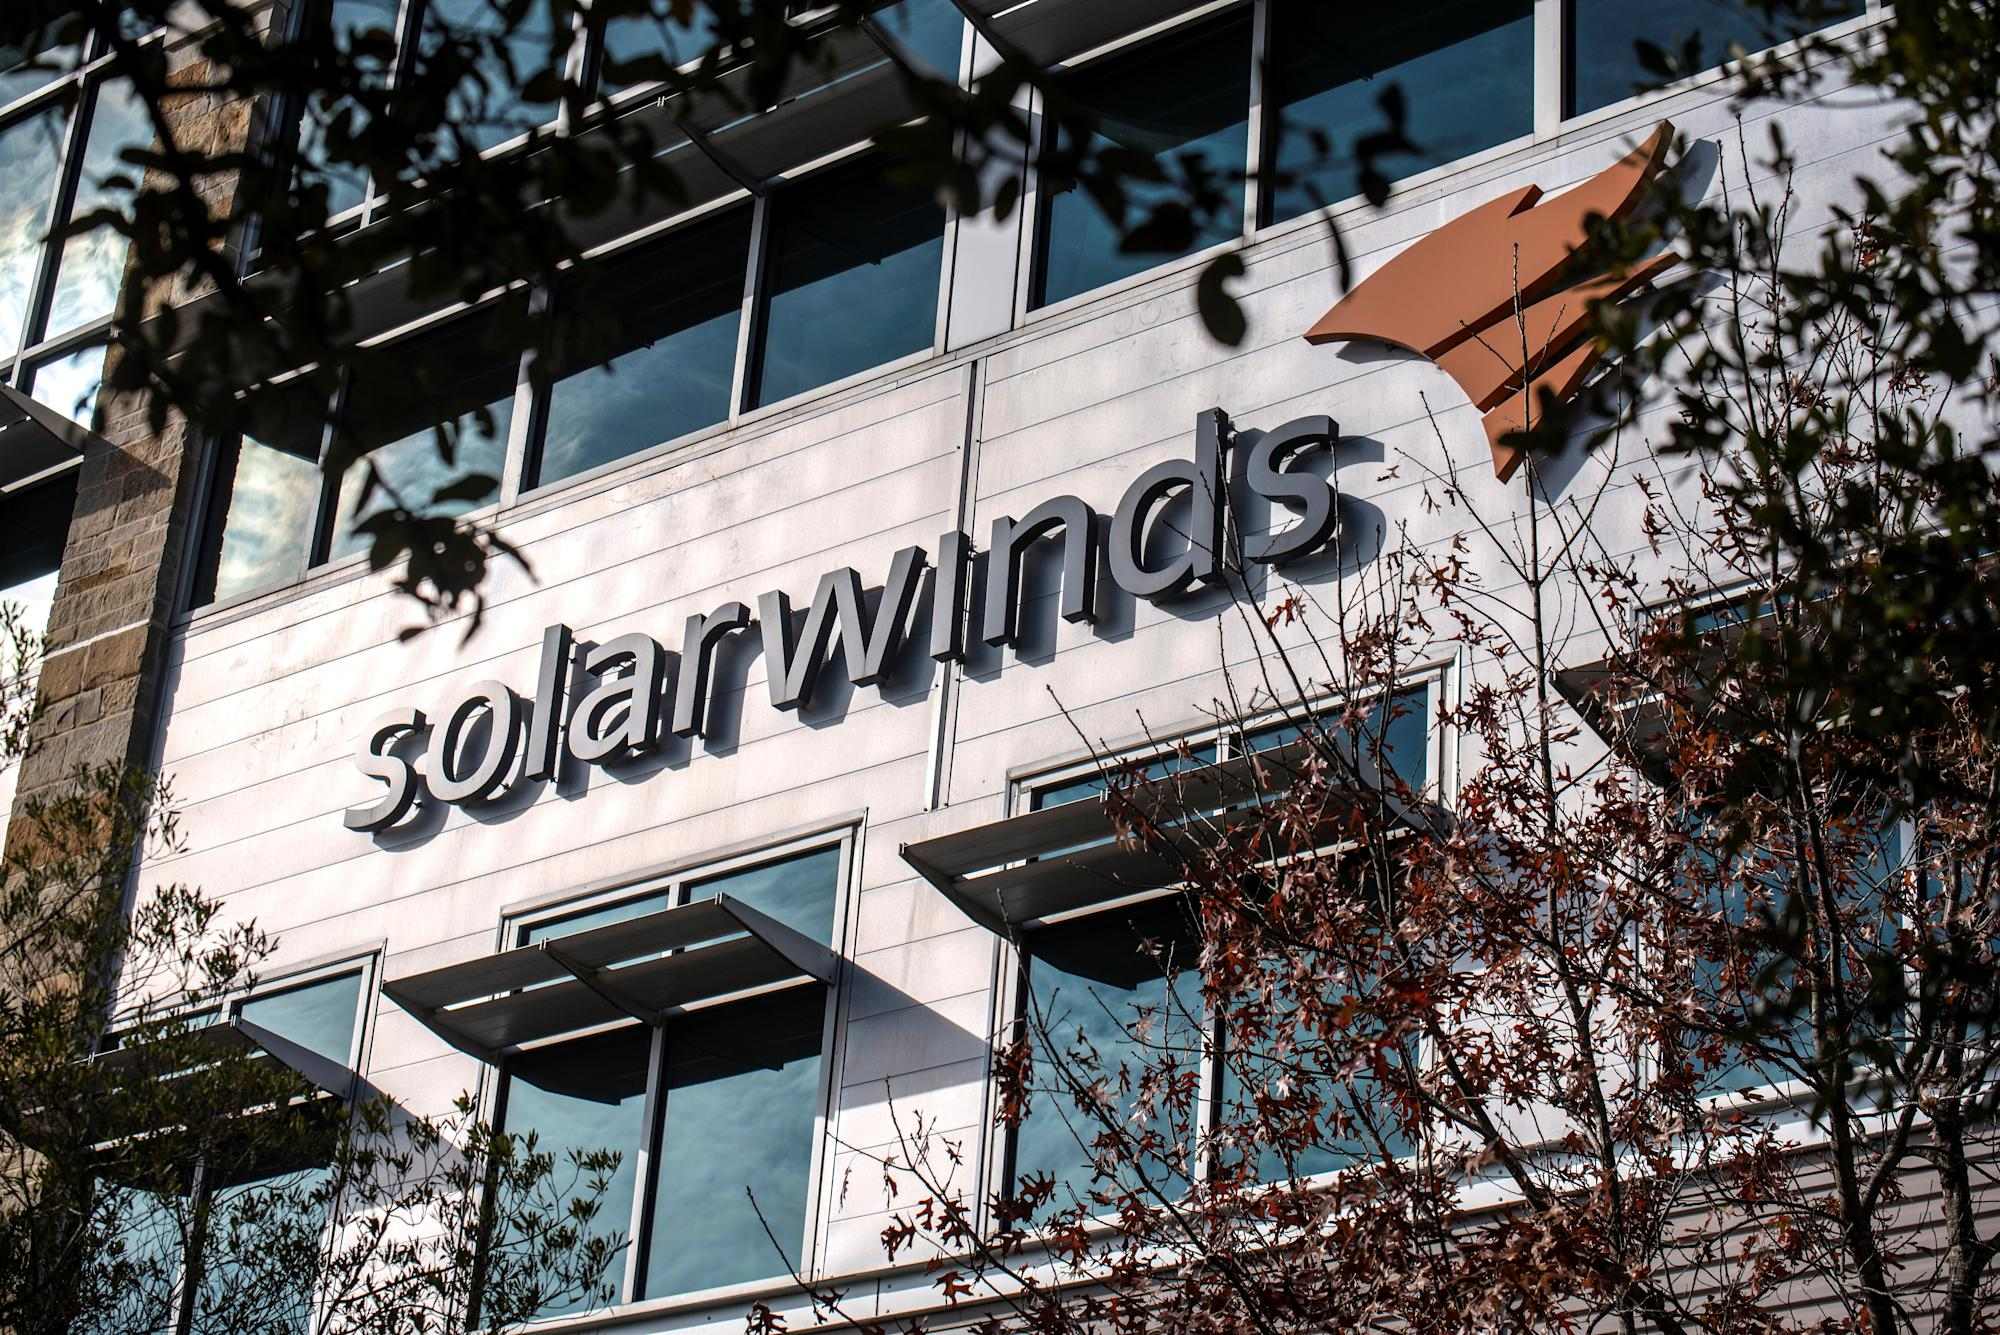 The SolarWinds hack may have been much broader than previously thought